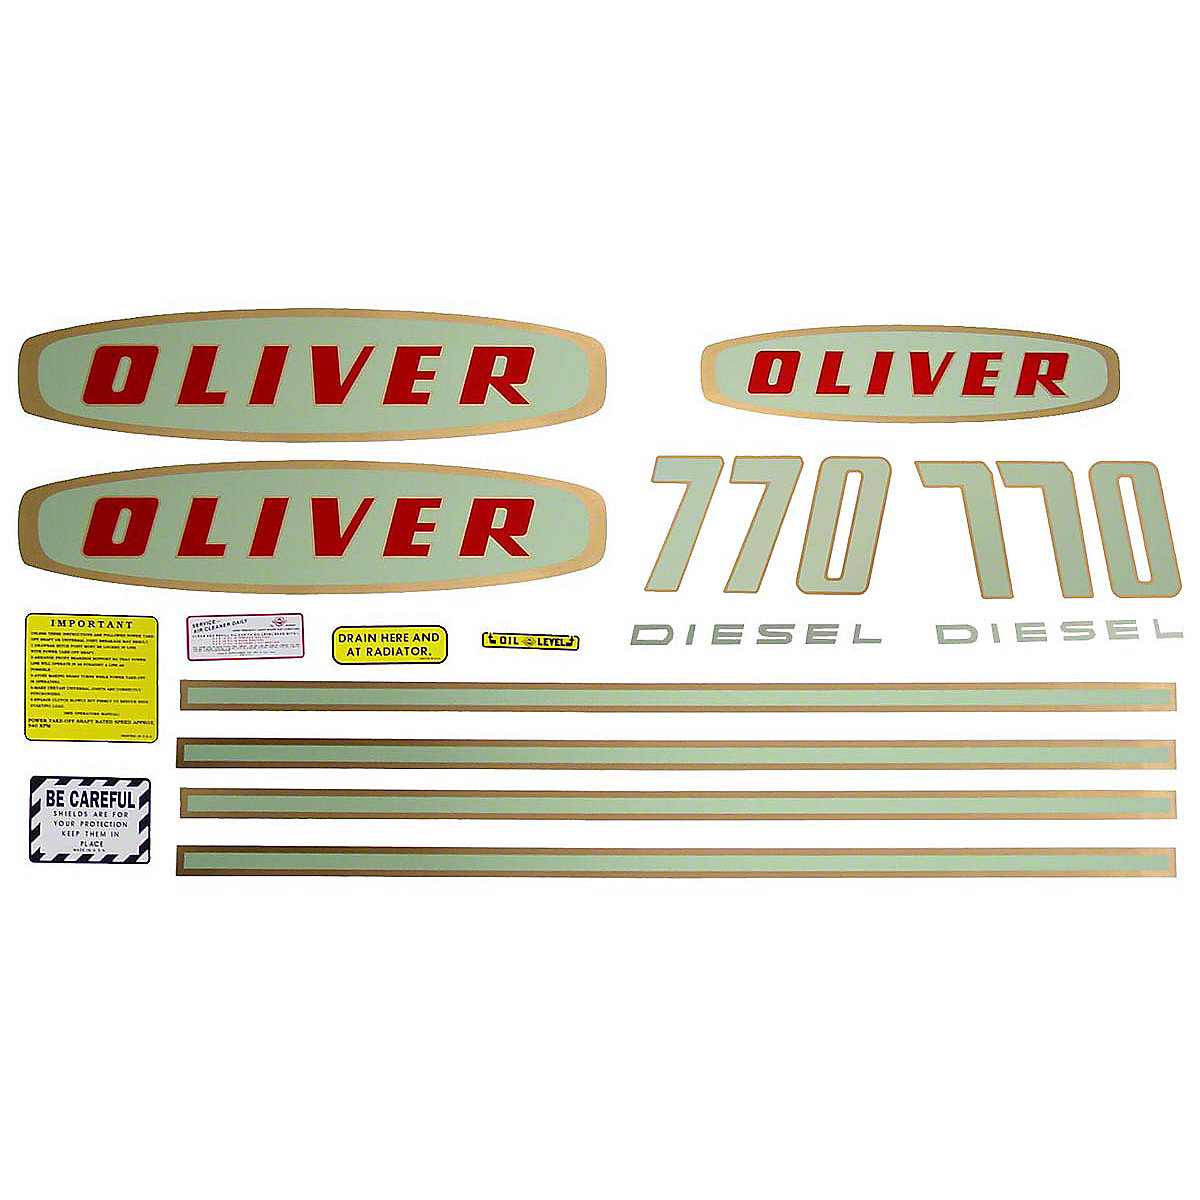 Mylar Decal Set For Oliver 770 Diesel Tractors. Up to SN#: 112250.